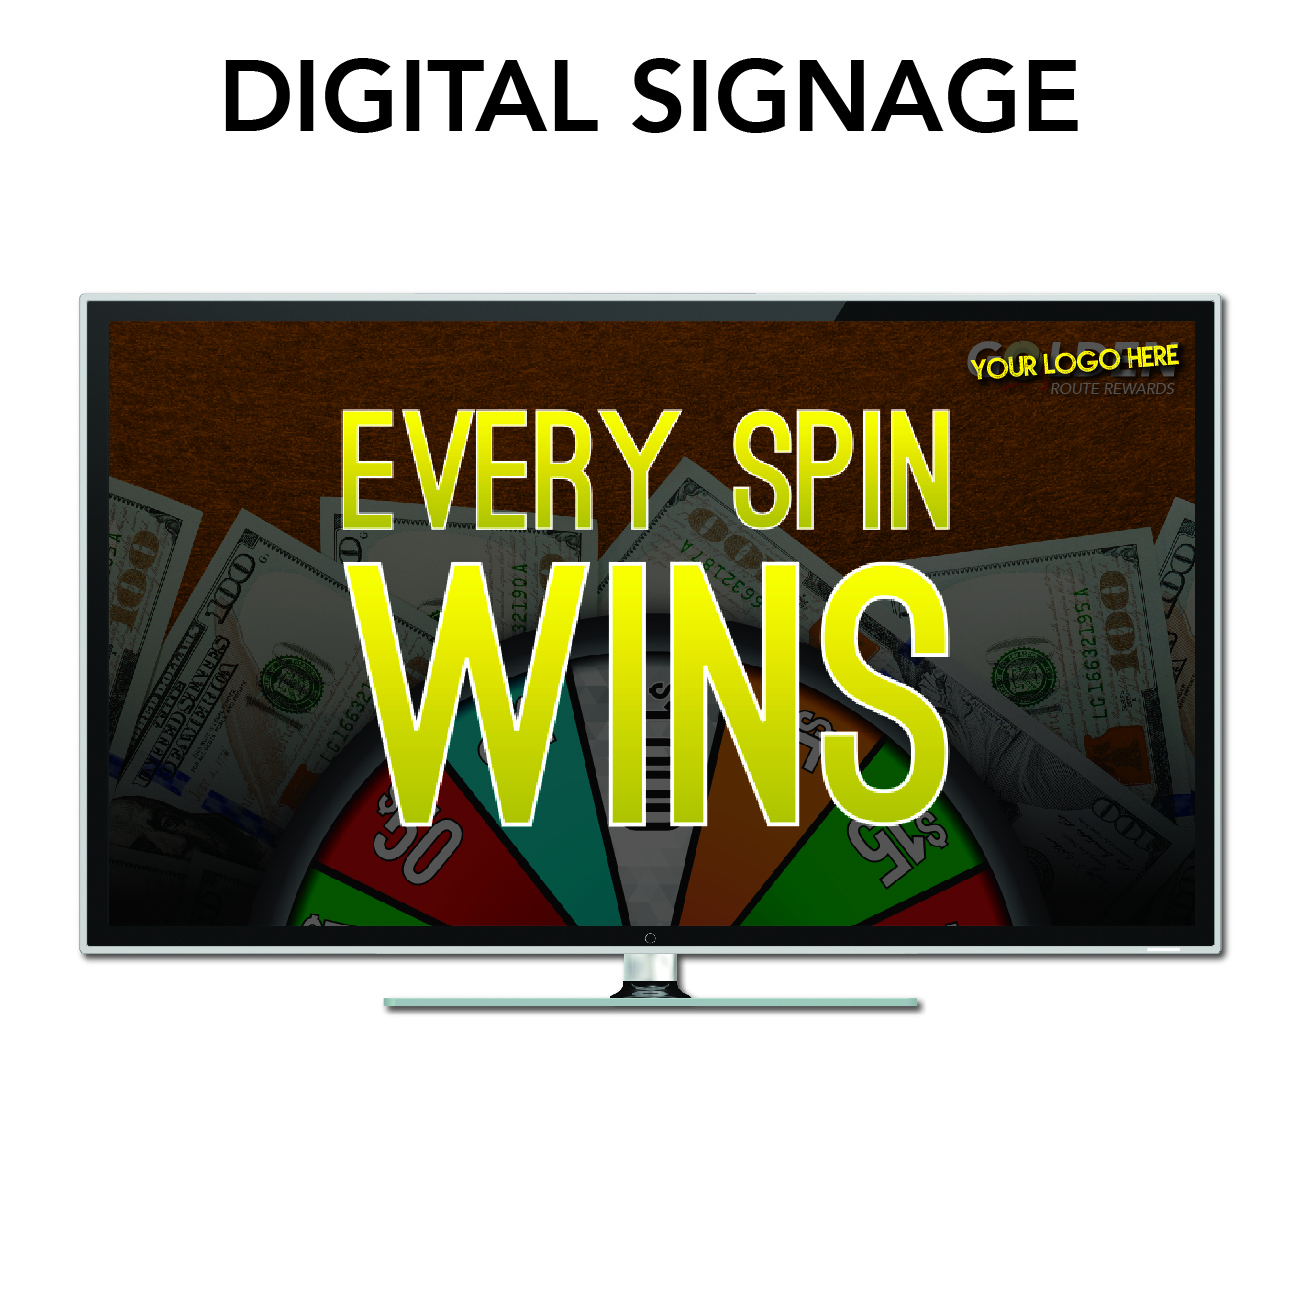 gro route rewards marketing needs digital signage